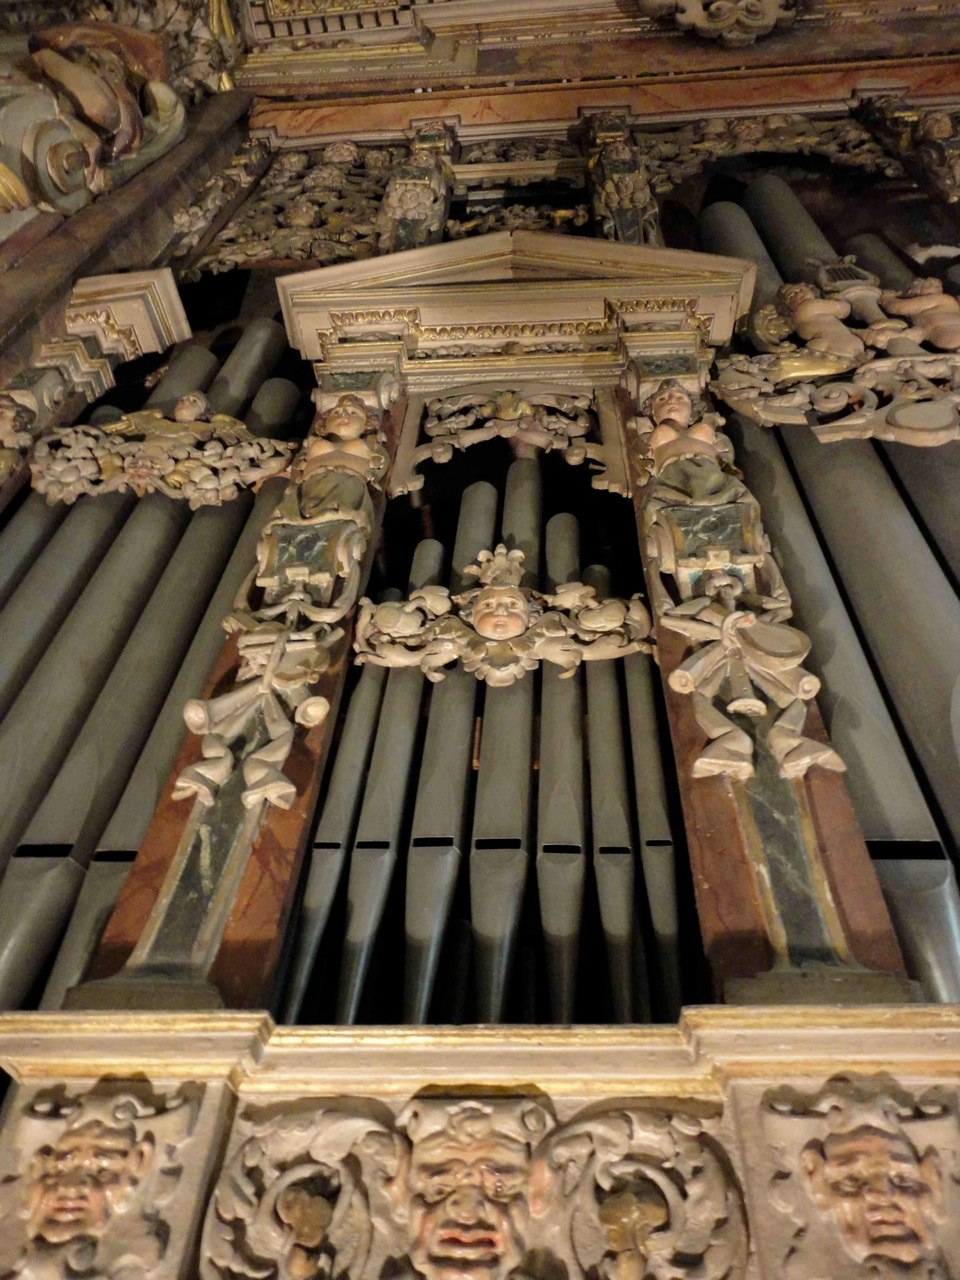 Decoration on the organ case in Brescia,San Carlo Contributed by Liuwe Tamminga